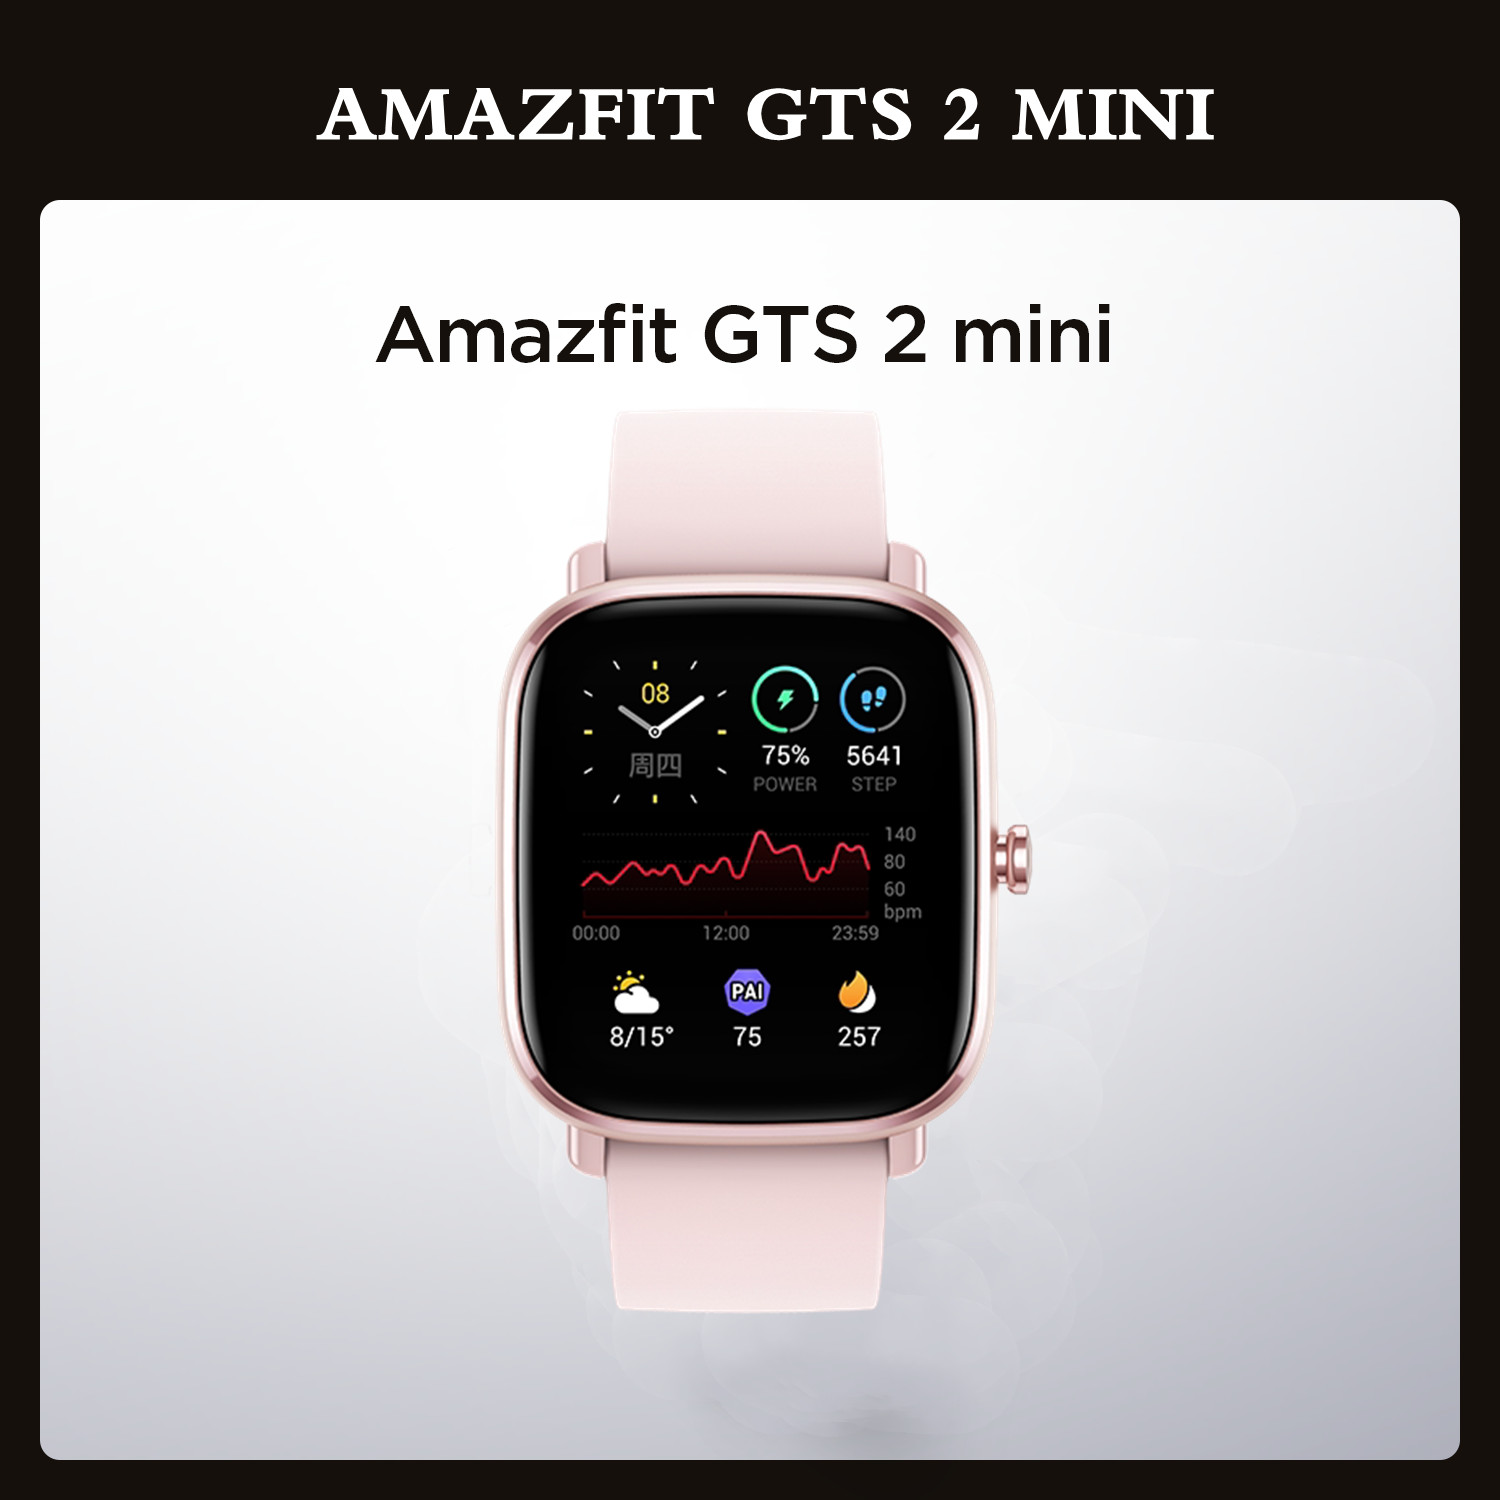 Permalink to Amazfit GTS 2 Mini Smartwatch GPS Bluetooth-compatible Female Cycle Tracking Smart Man Woman Watch For Android iOS Phone